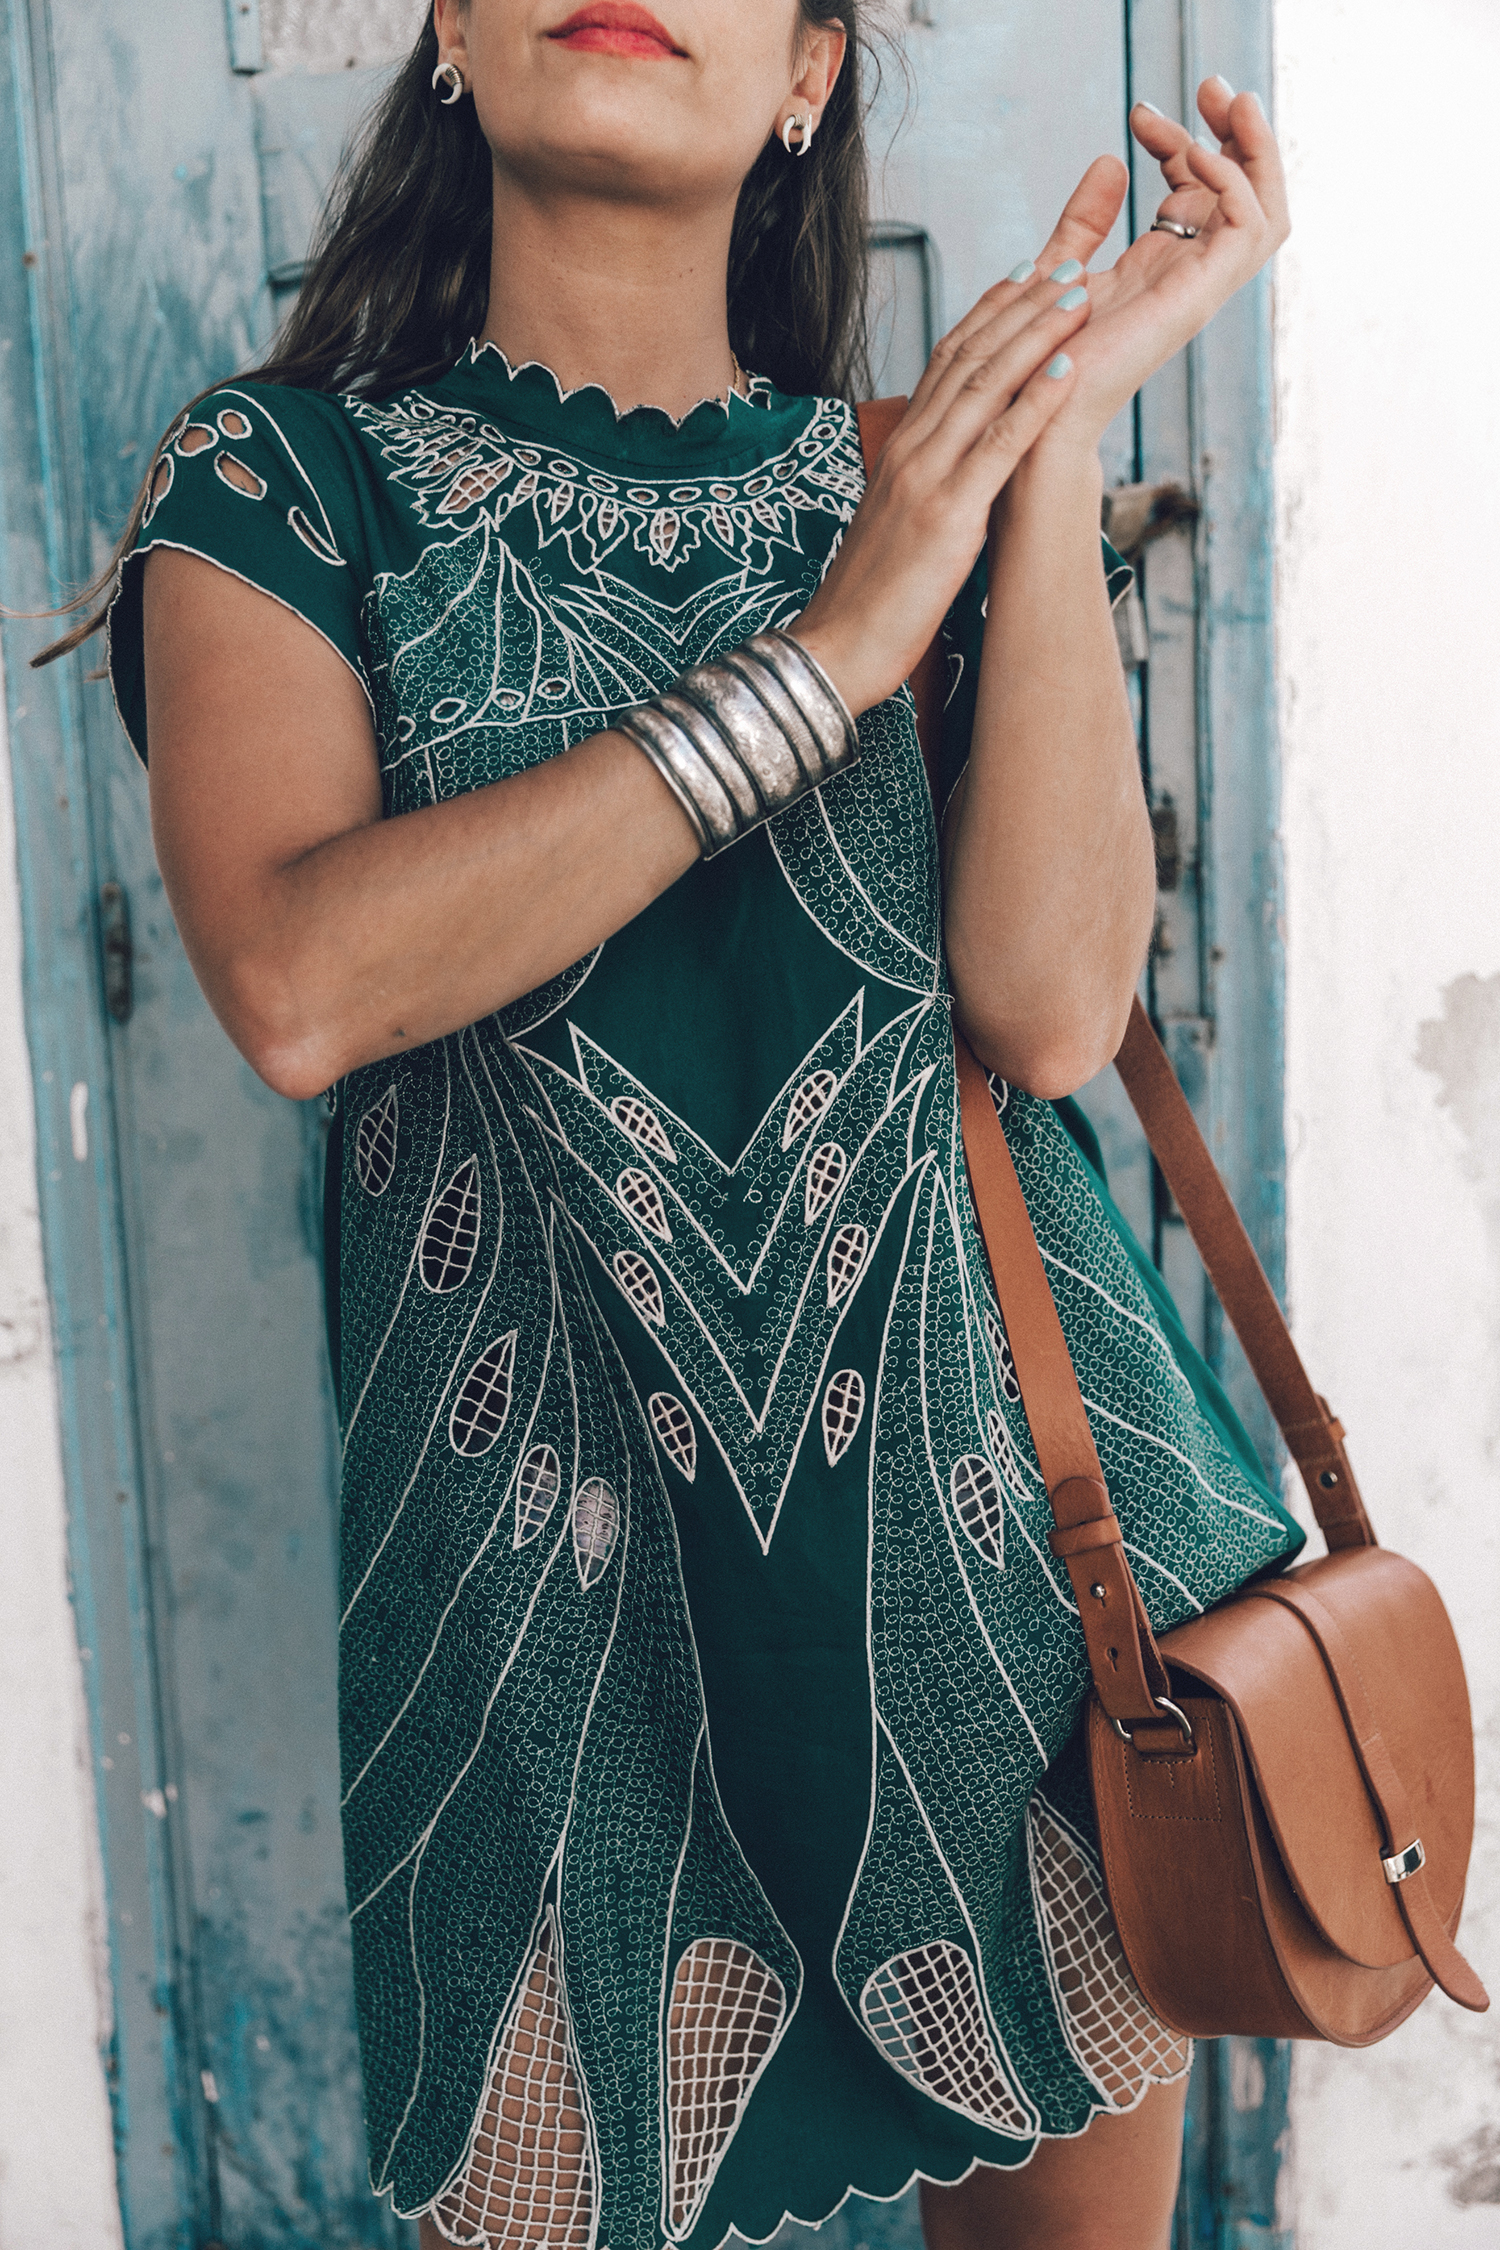 Tularosa_Dress-Soludos_Escapes-Soludos_Espadrilles-Sezane_Bag-Leather_Crossbody_Bag-Boho_Outfit-Look-Ray_Ban-Street_Style-Mykonos-Greece-Collage_Vintage-57